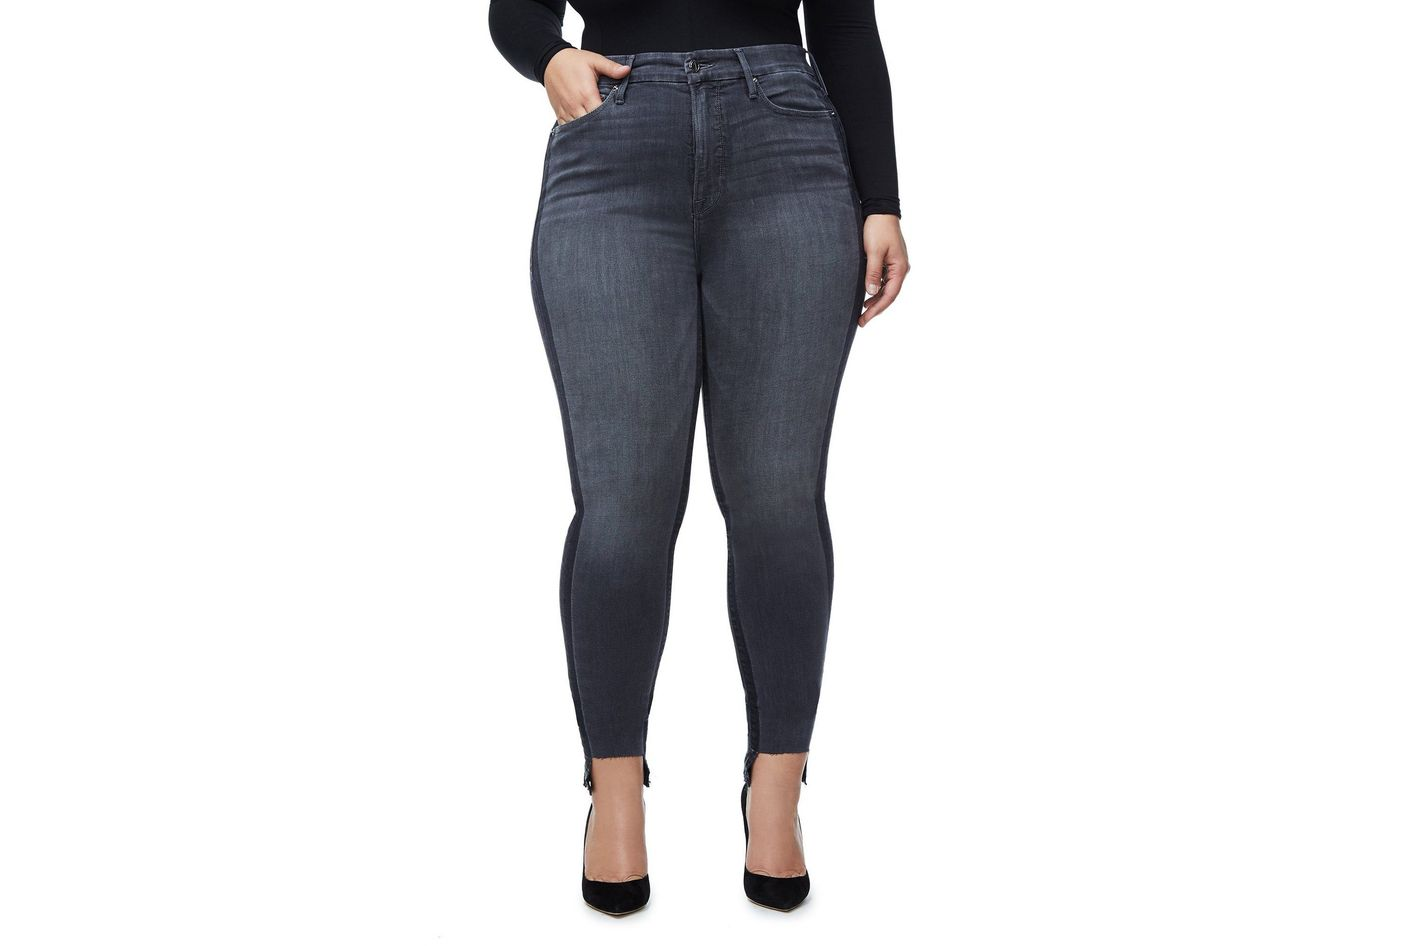 89cc5760290818 10 Best Plus-Size Jeans According to Real Women 2018